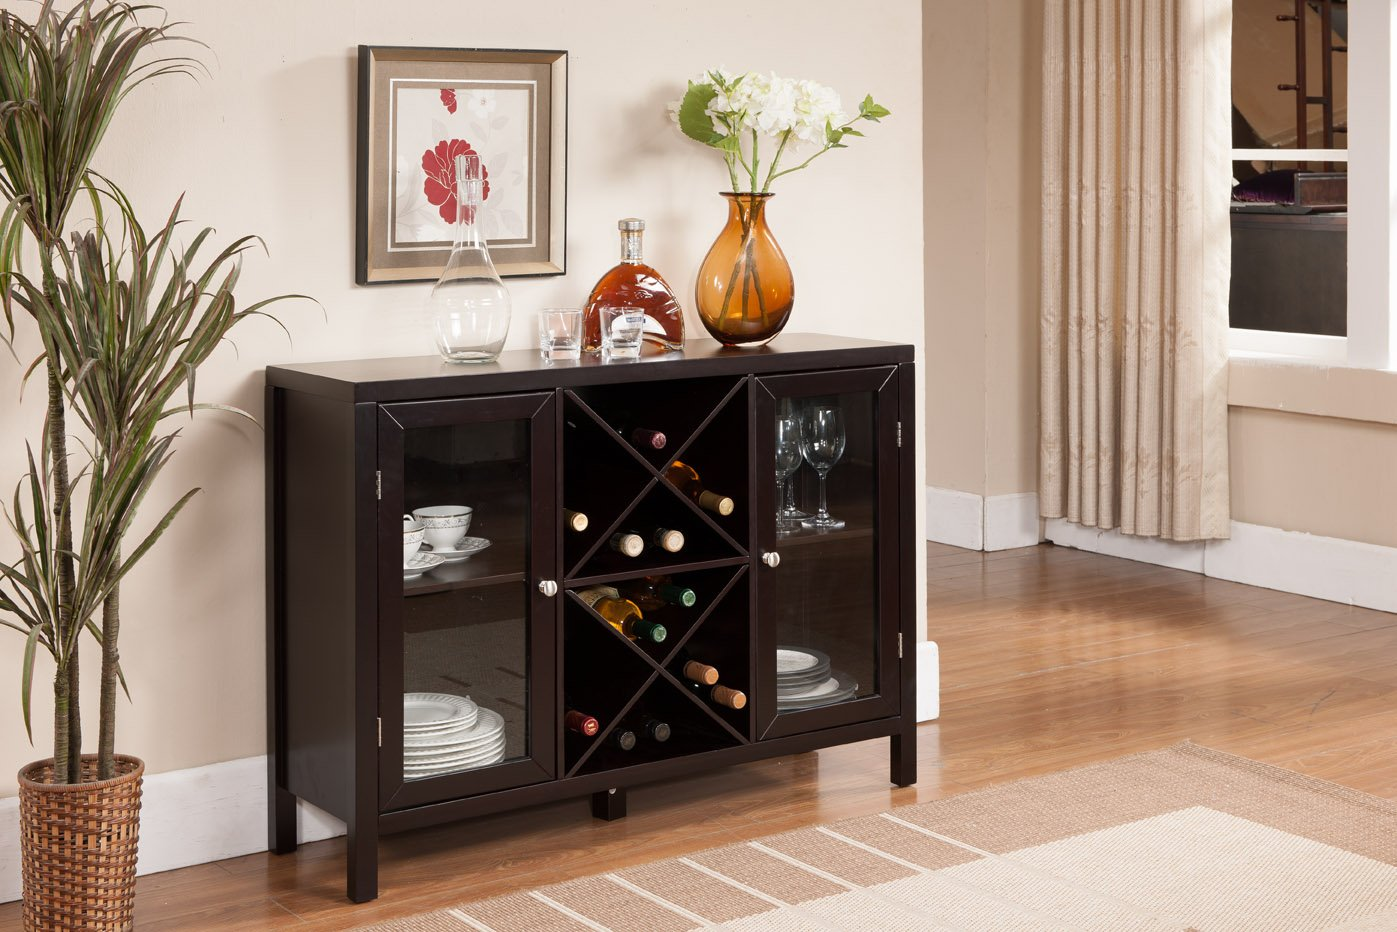 countrysearch stocked cn wine wholesale wooden cupboard rack alibaba store fully china furniture